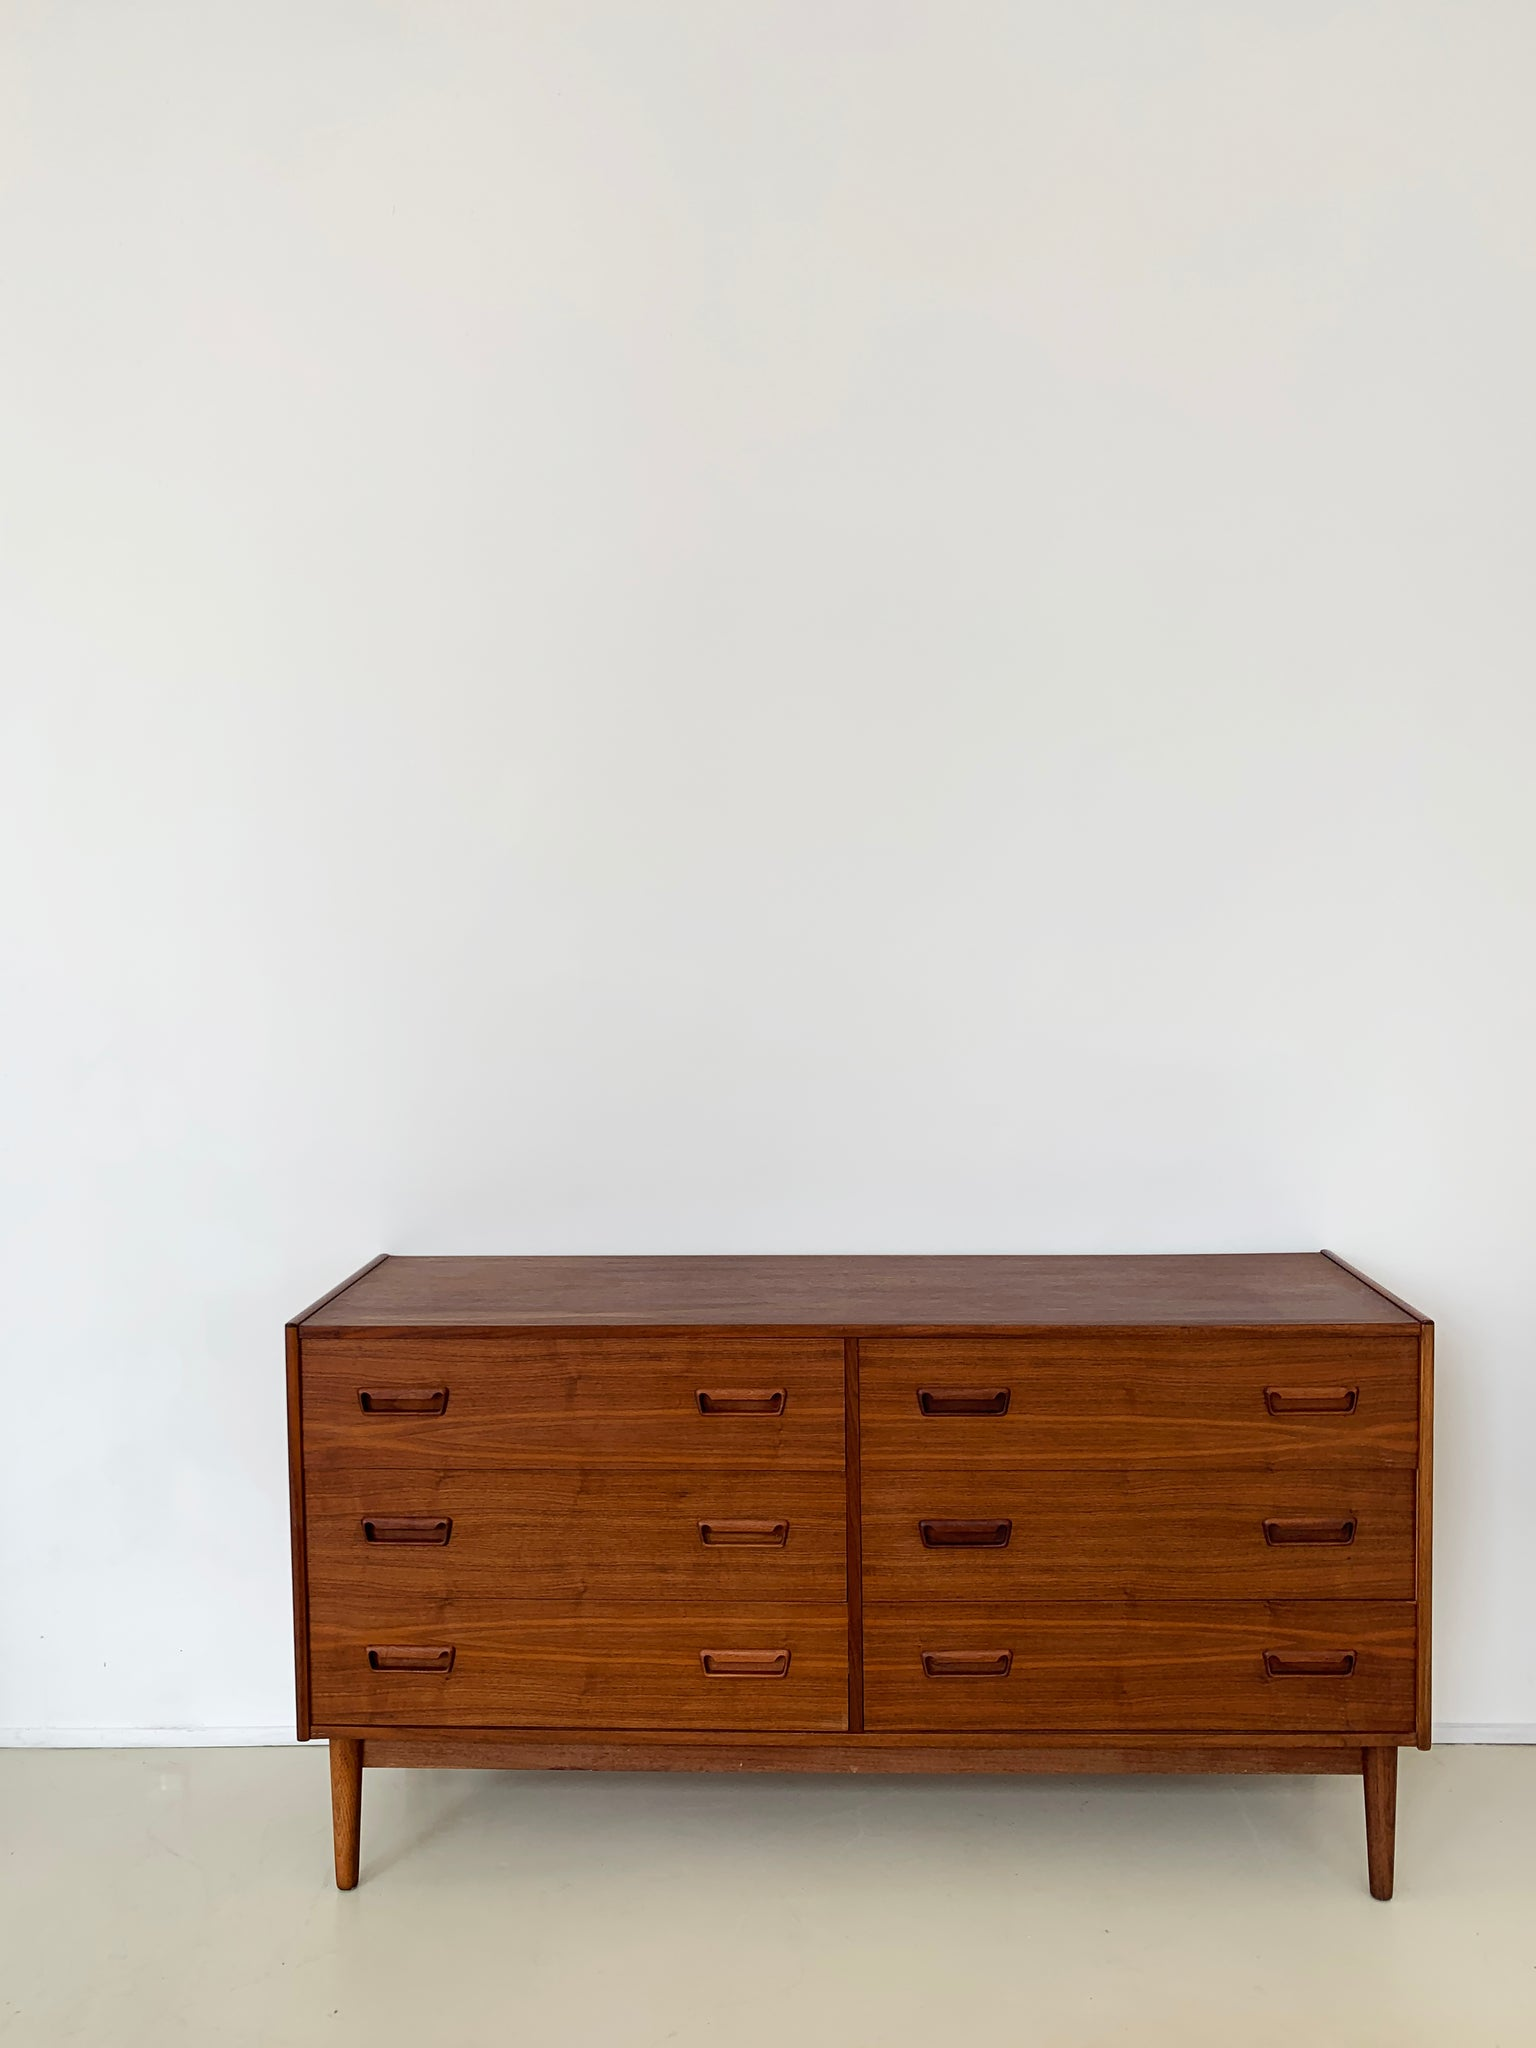 1970s Walnut 6-Drawer Credenza by Gunner Nielsen Tibergarrd